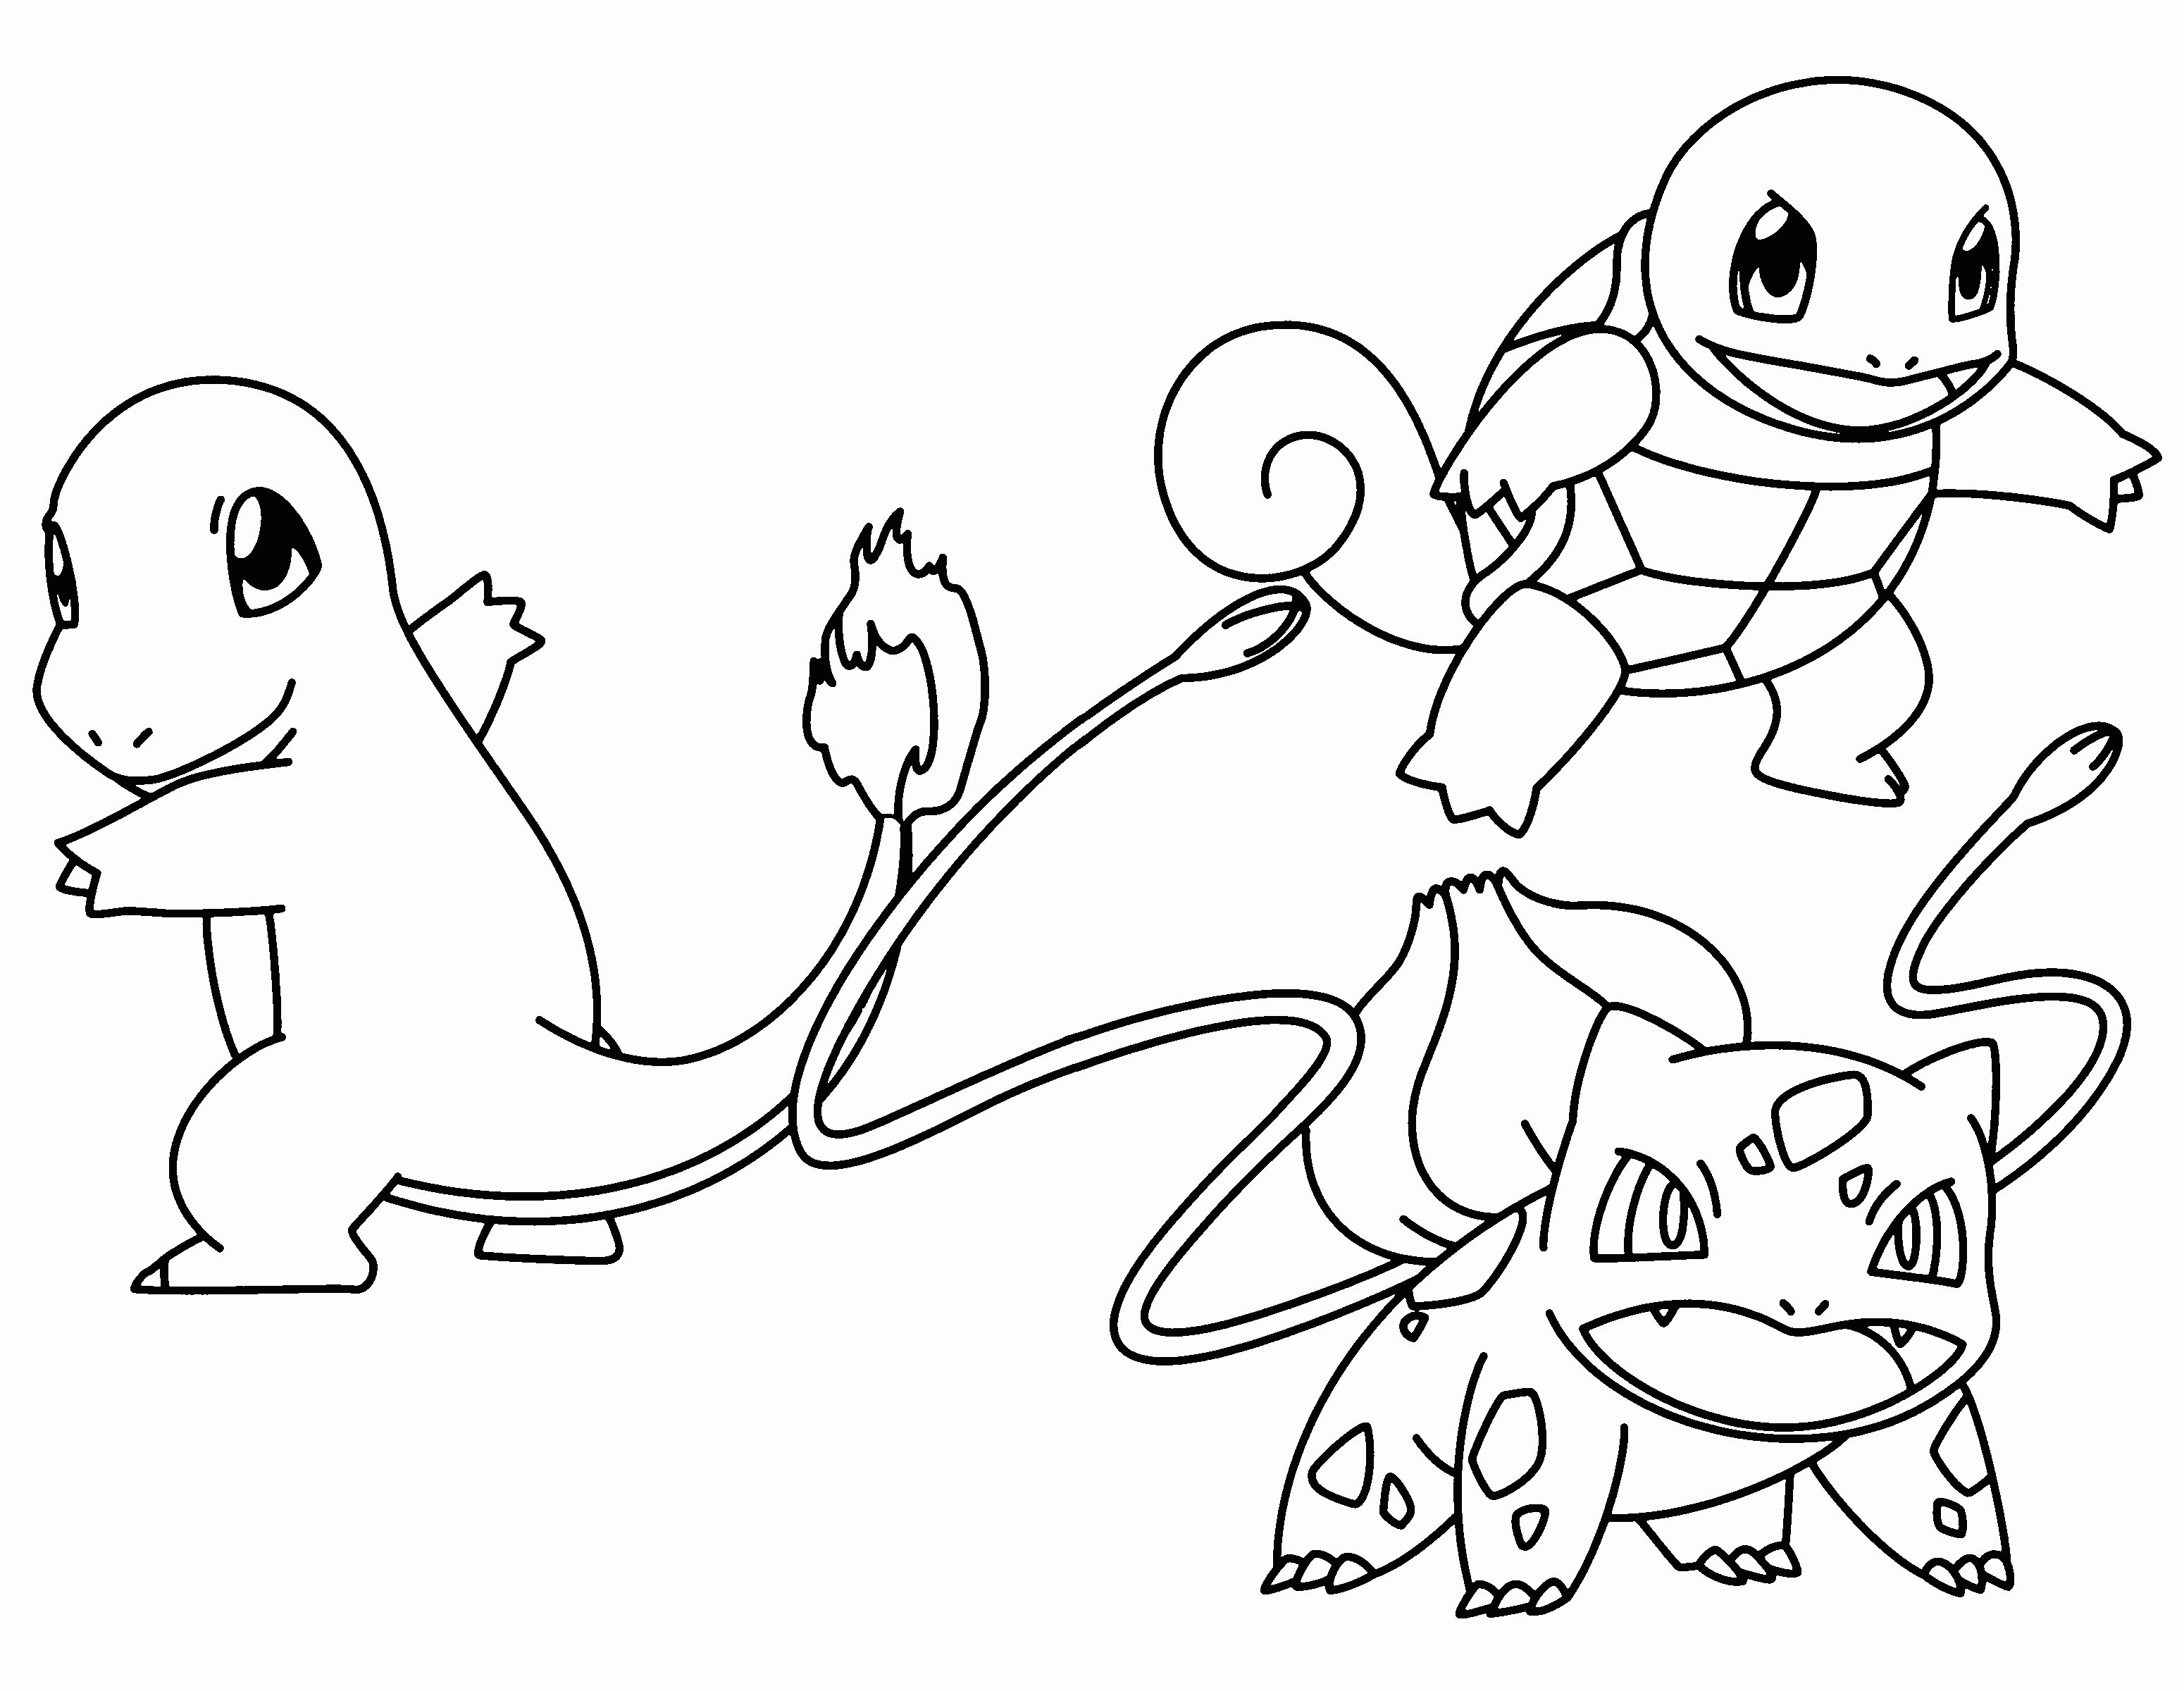 Charmander Coloring Page Pokemon Charmander Coloring Pages Kids